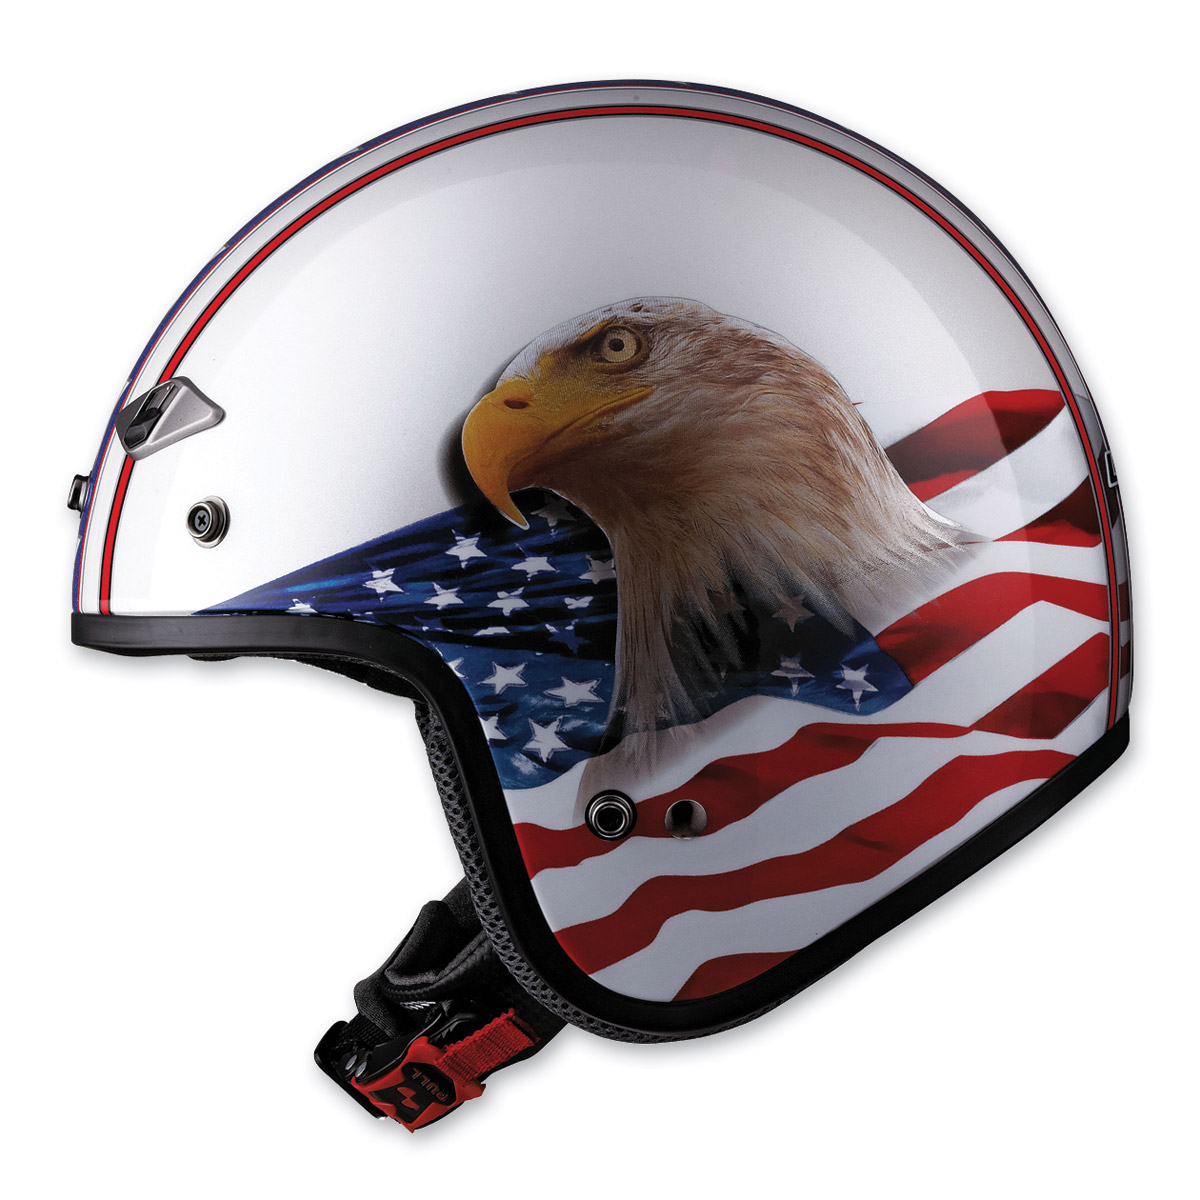 LS2 OF567 Eagle White Open Face Helmet